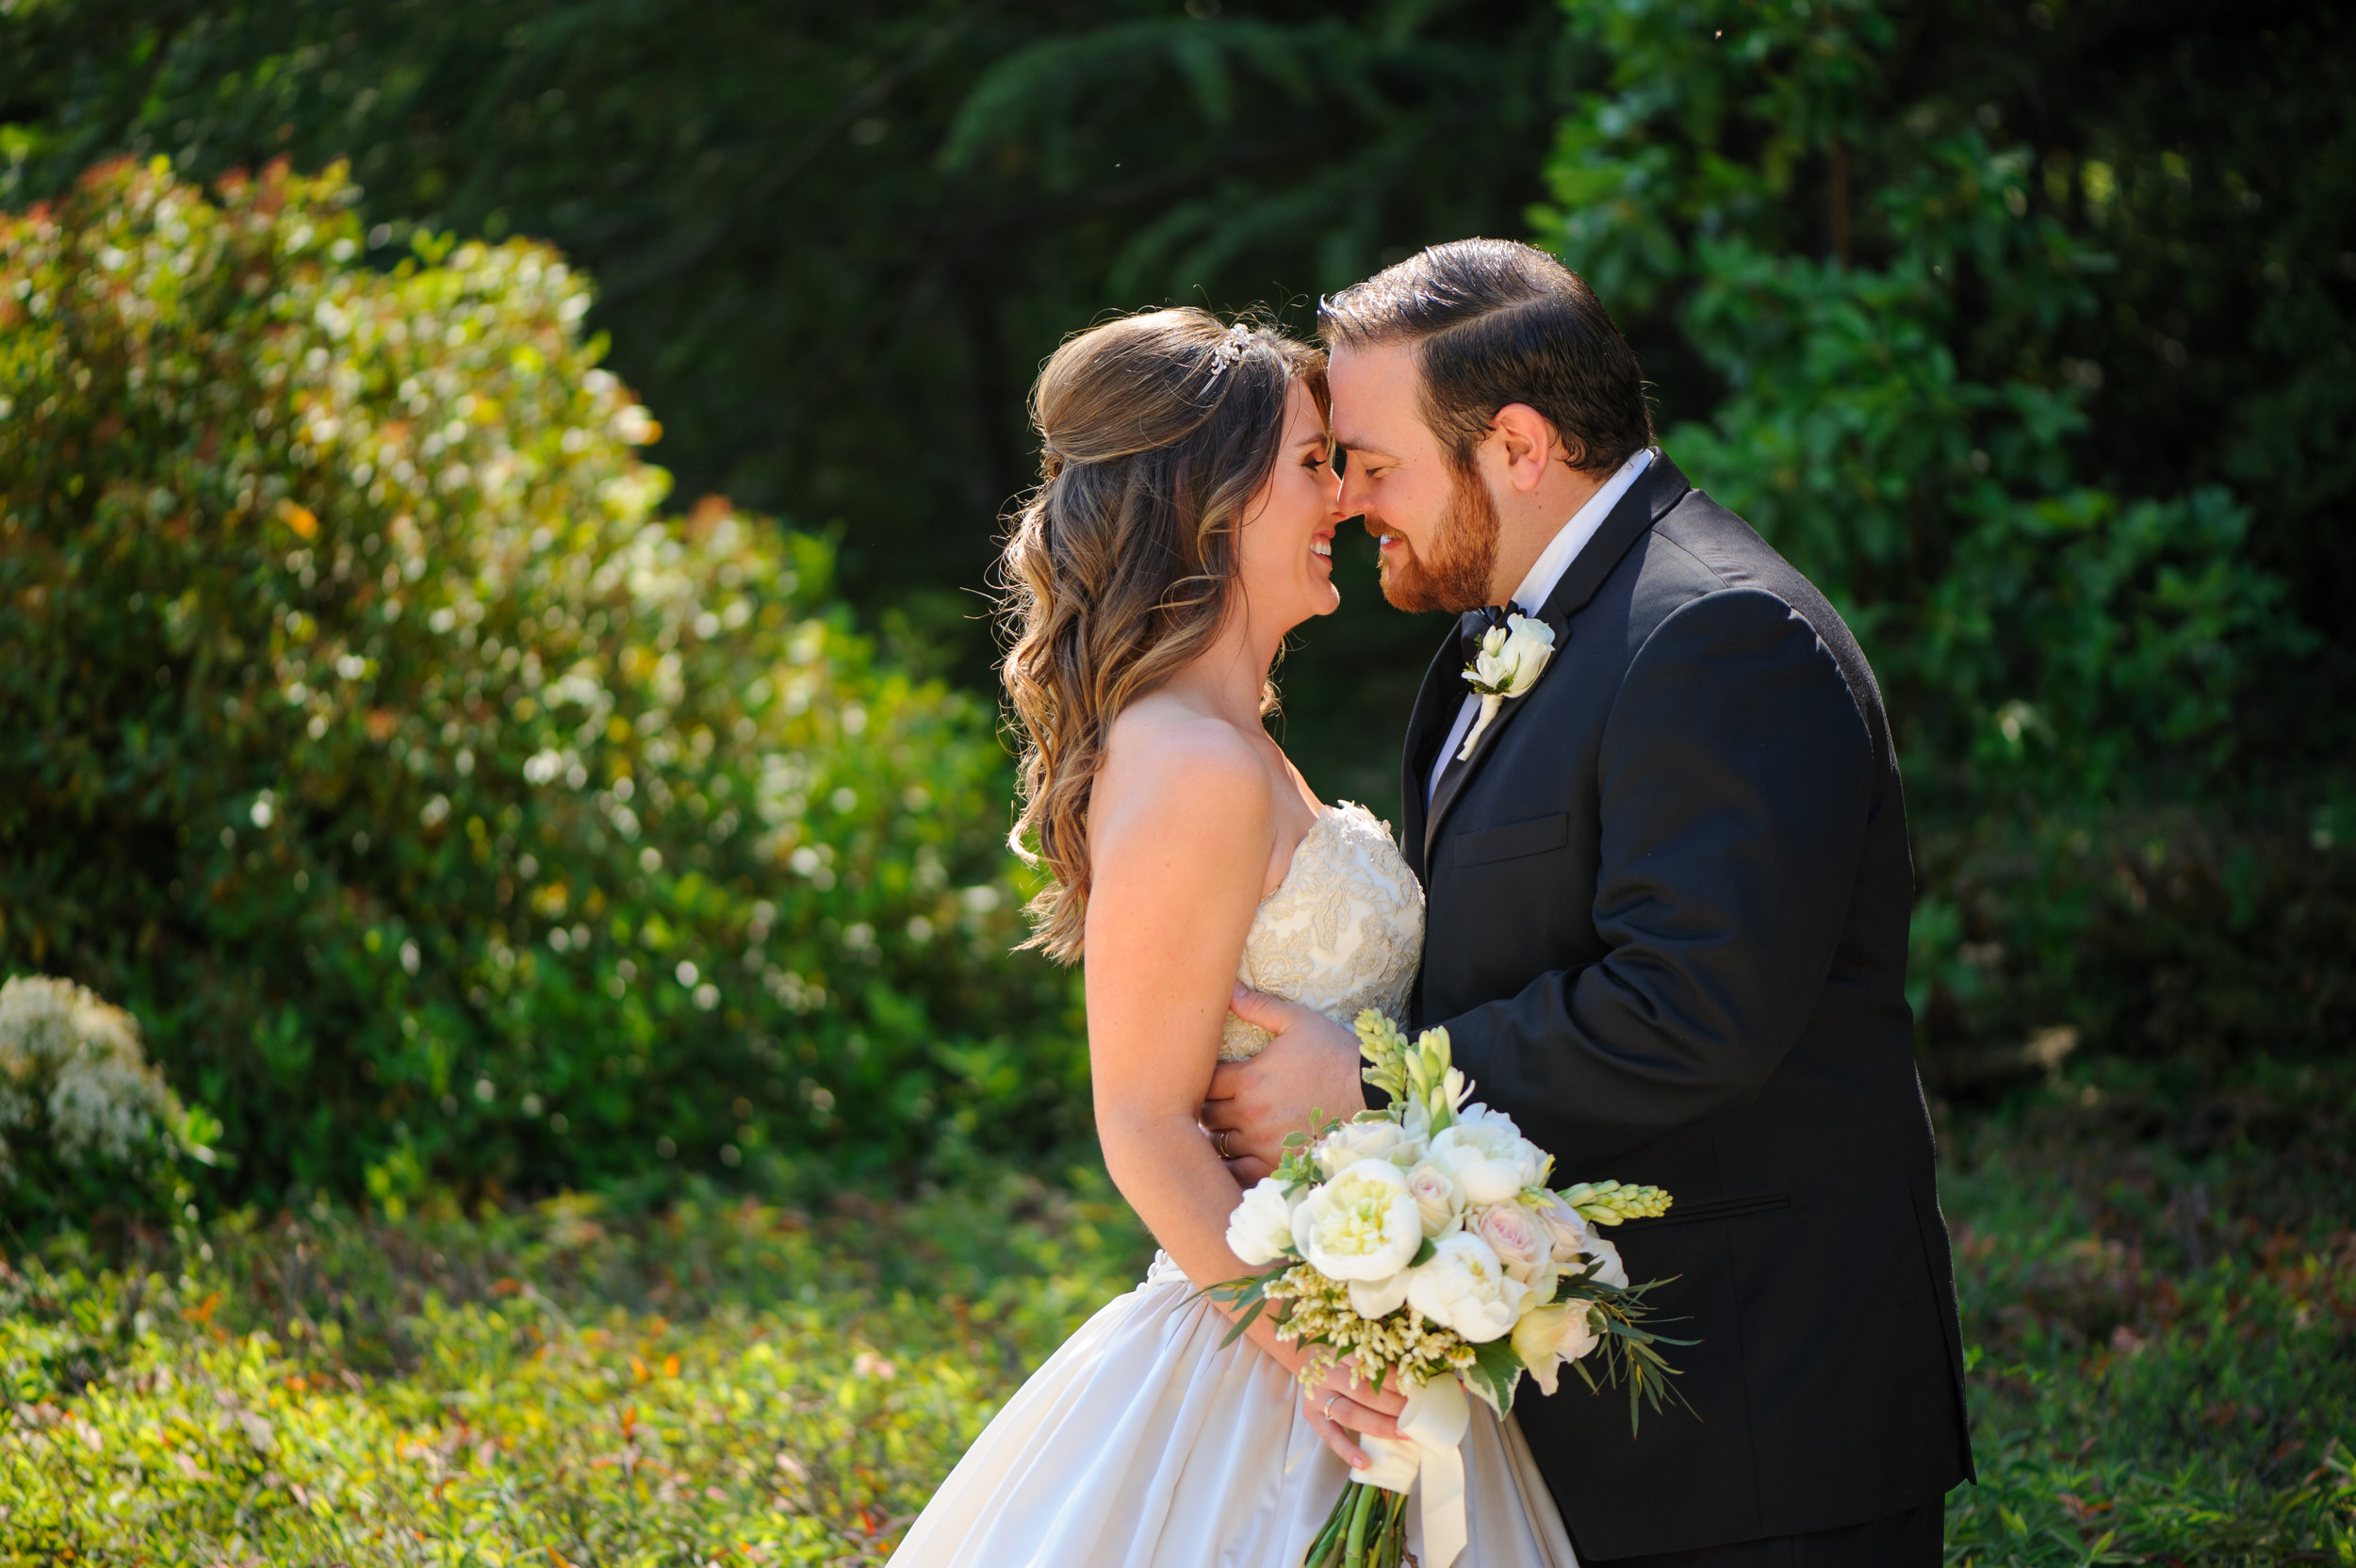 lindsey-charlie-053-monte-verde-inn-foresthill-wedding-photographer-katherine-nicole-photography.JPG